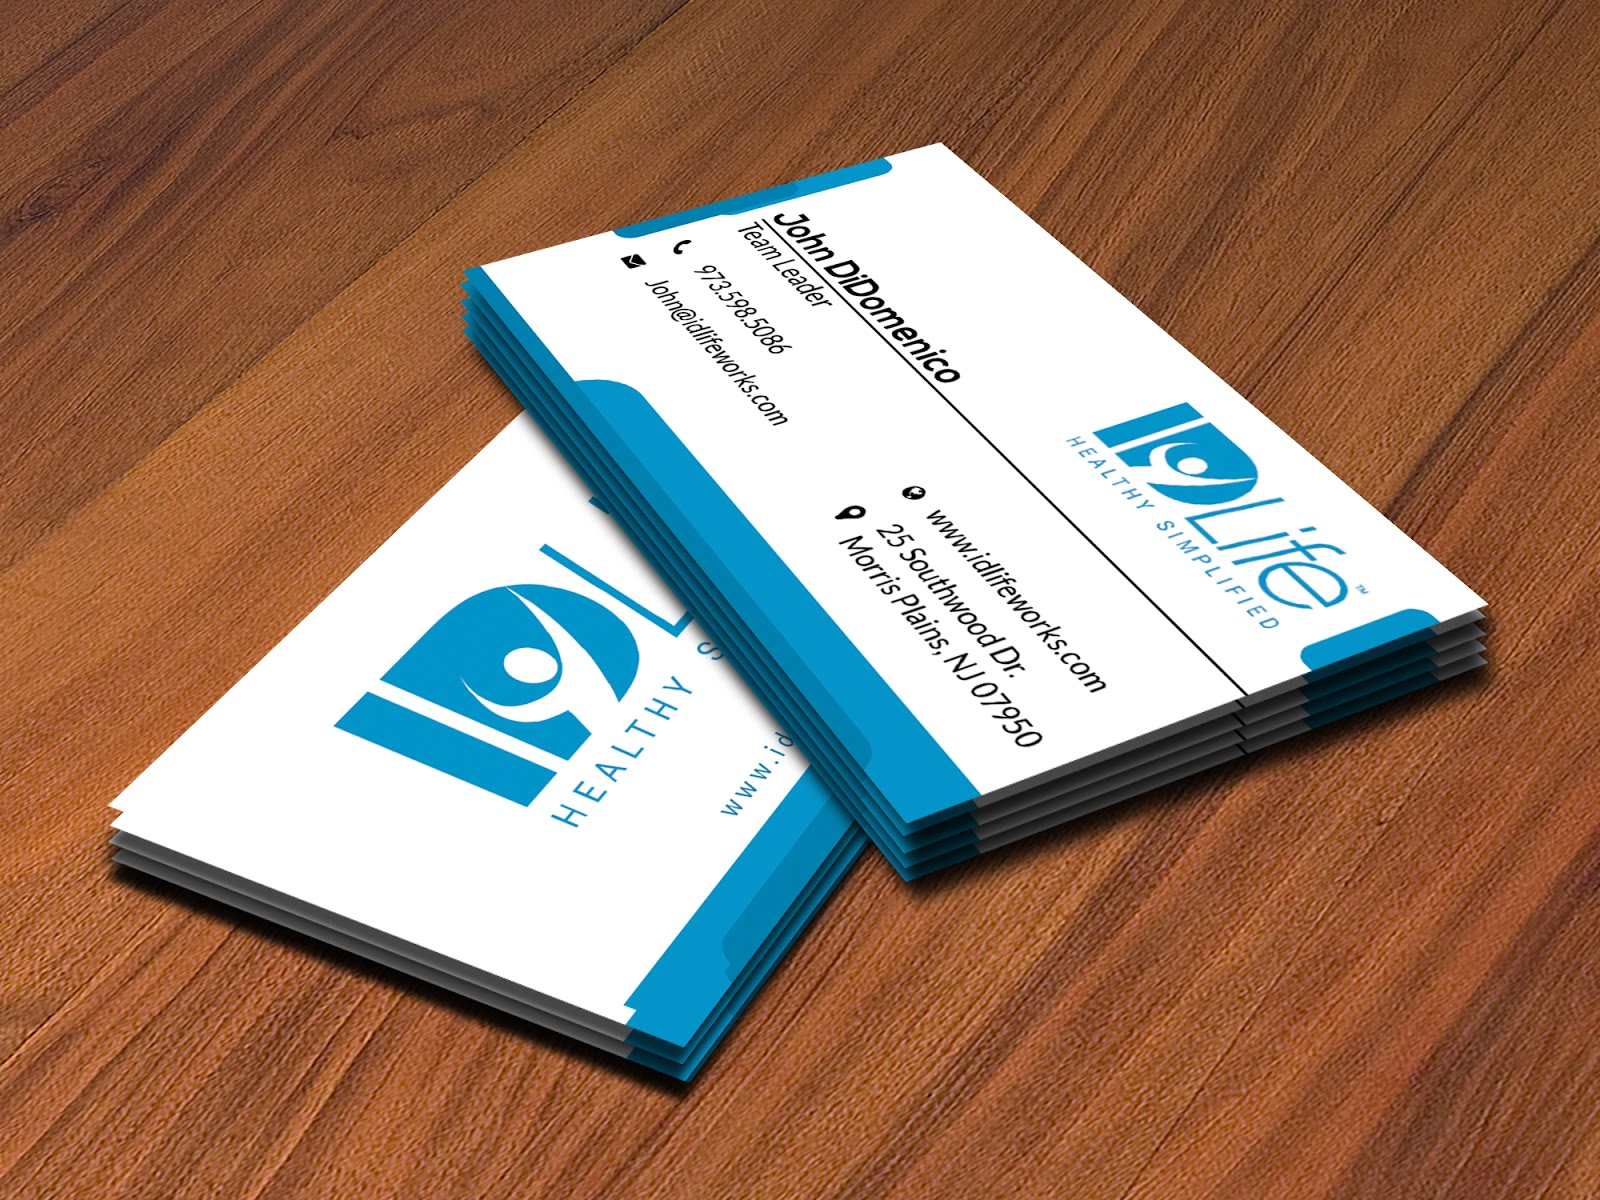 Design simple business card with 2 concept - Mir Graphics Pro